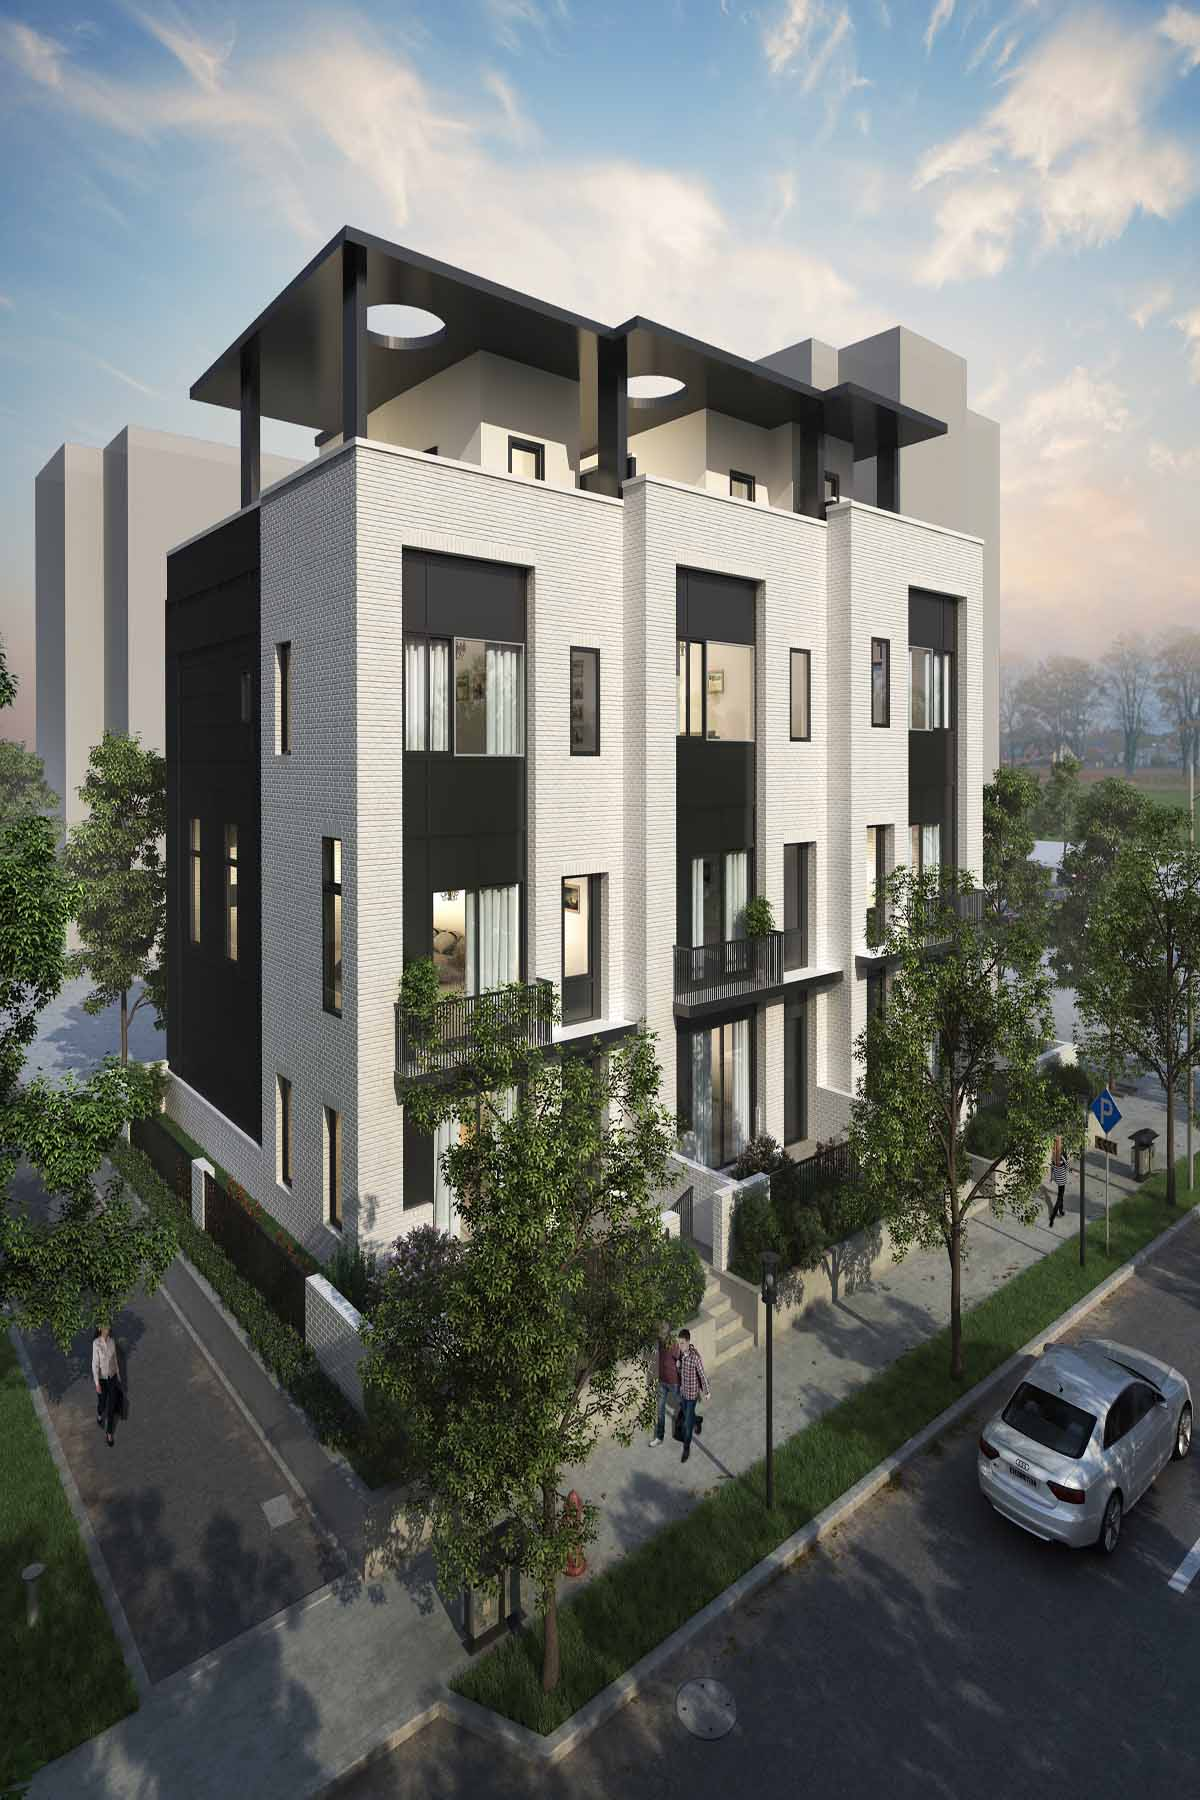 Moradia em banda para Venda às Built by Award Winning TSW Architects and Cable Enterprises 1137 Ponce De Leon Avenue NE Unit 2 Atlanta, Geórgia, 30306 Estados Unidos